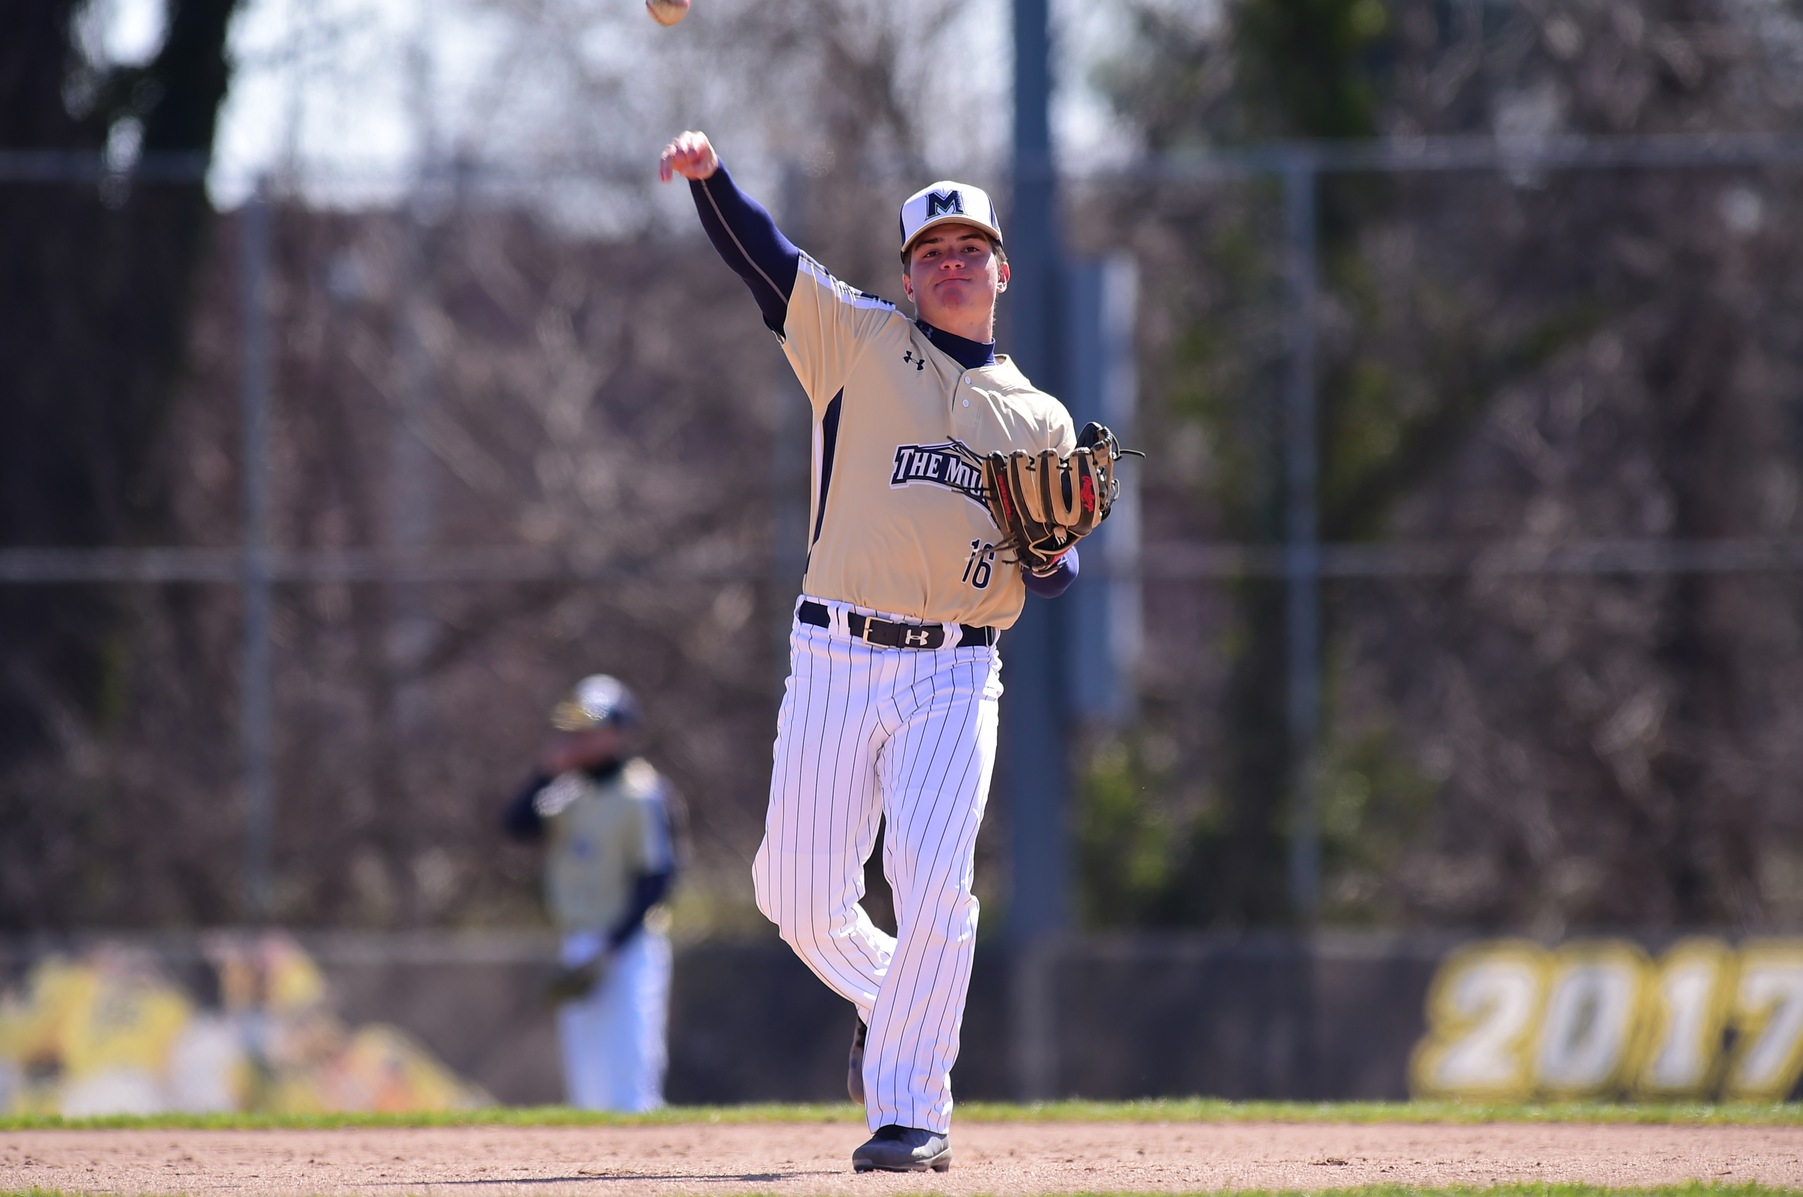 Mount St. Mary's Baseball Drops Both Games Of Doubleheader At Bryant Saturday